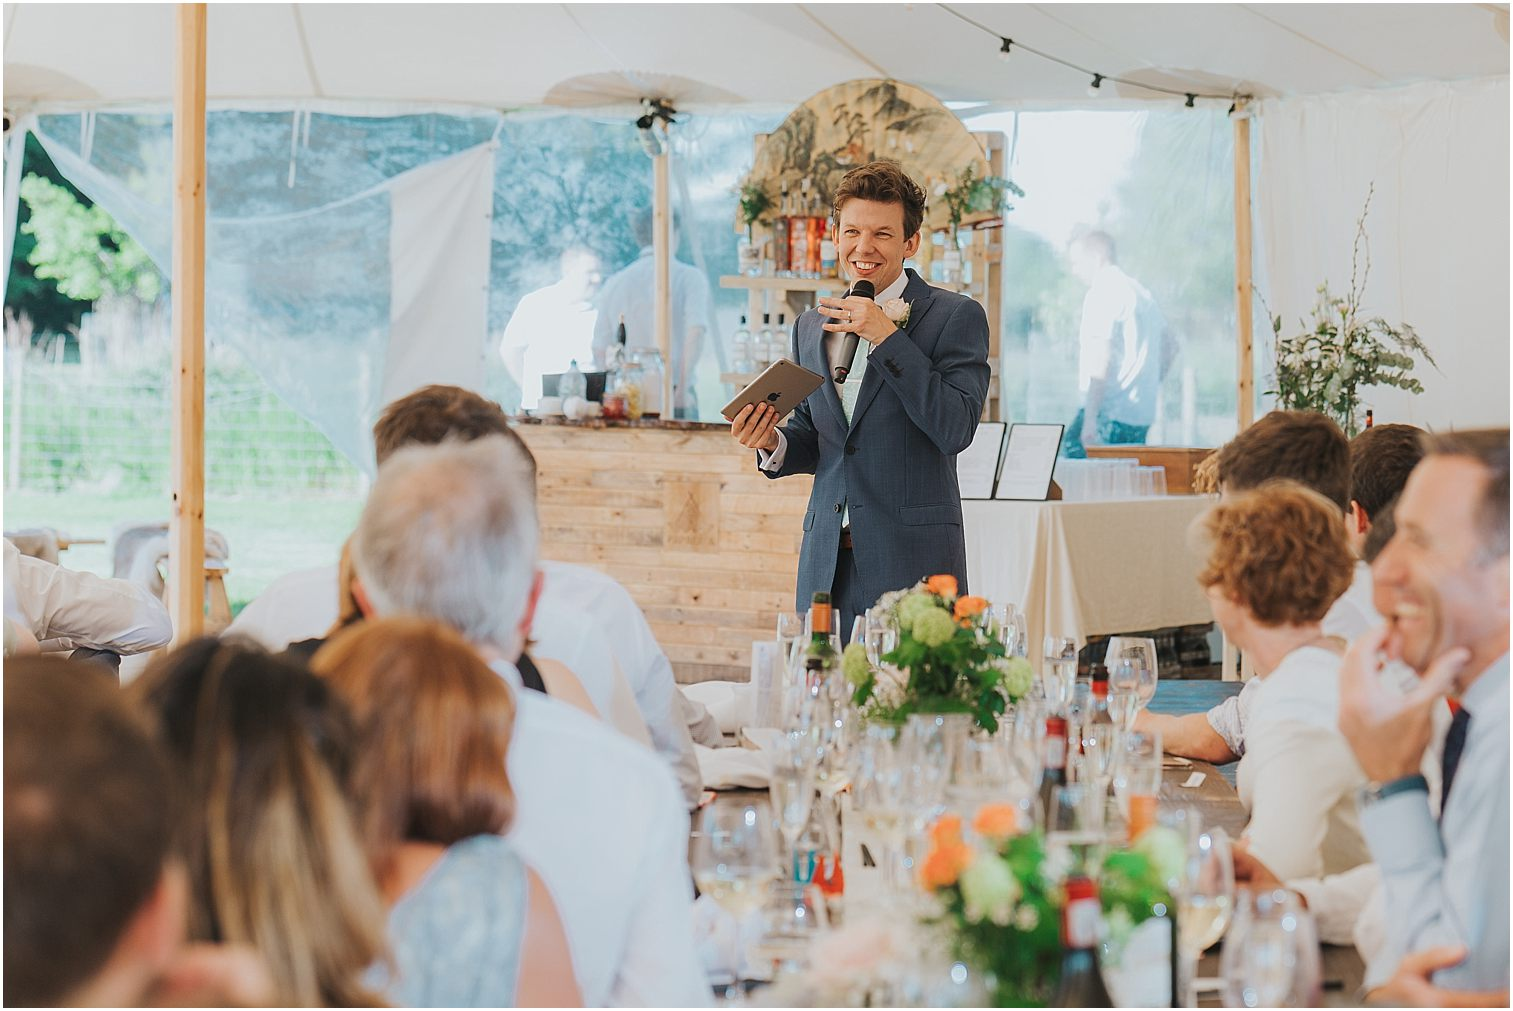 Groom giving a speech at his wedding